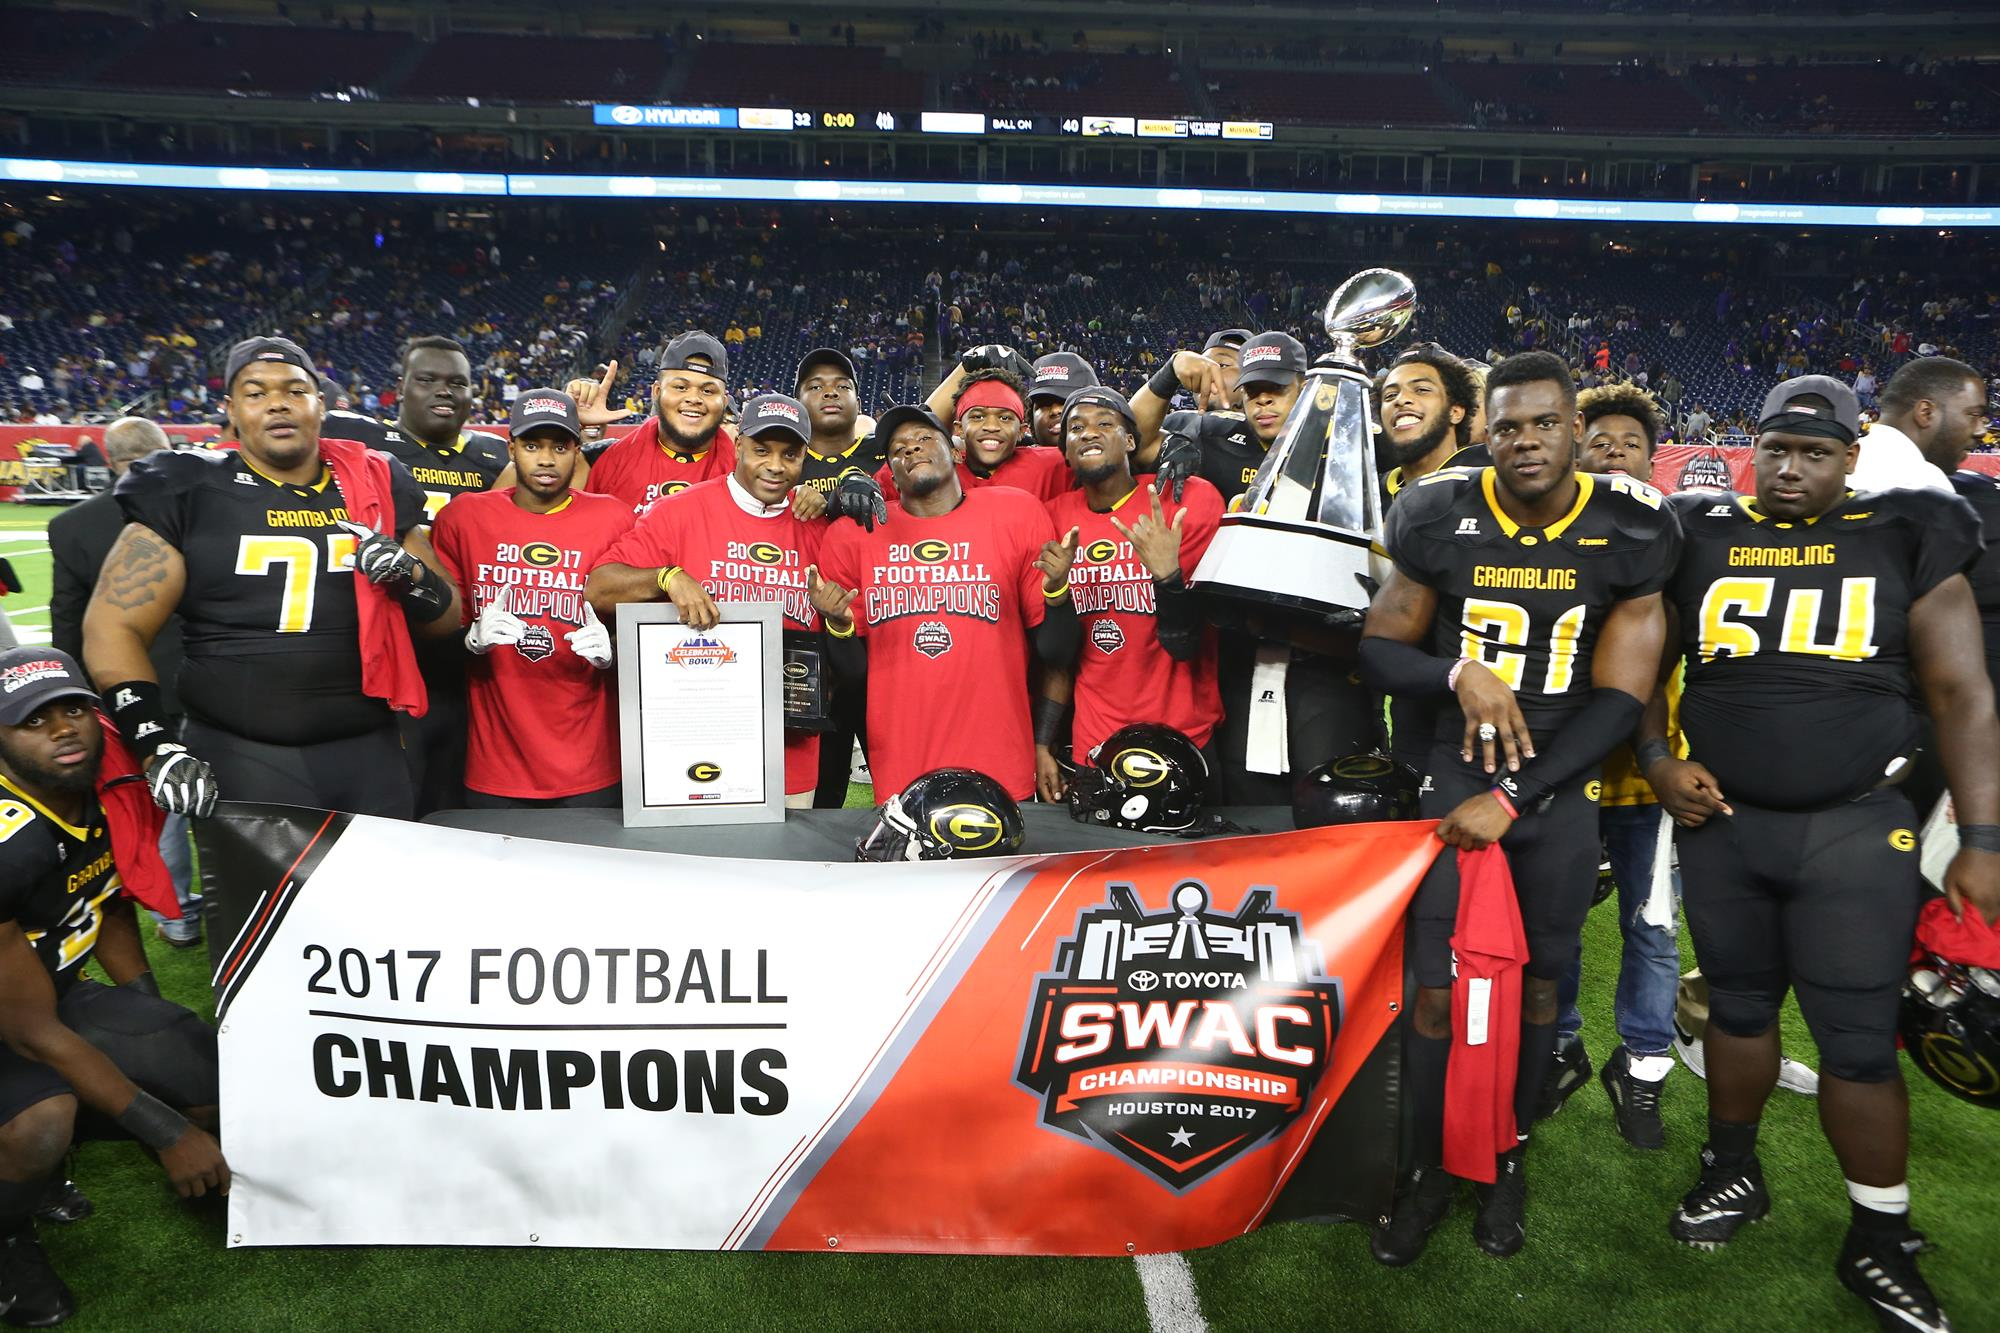 Tigers capture second consecutive SWAC Championship